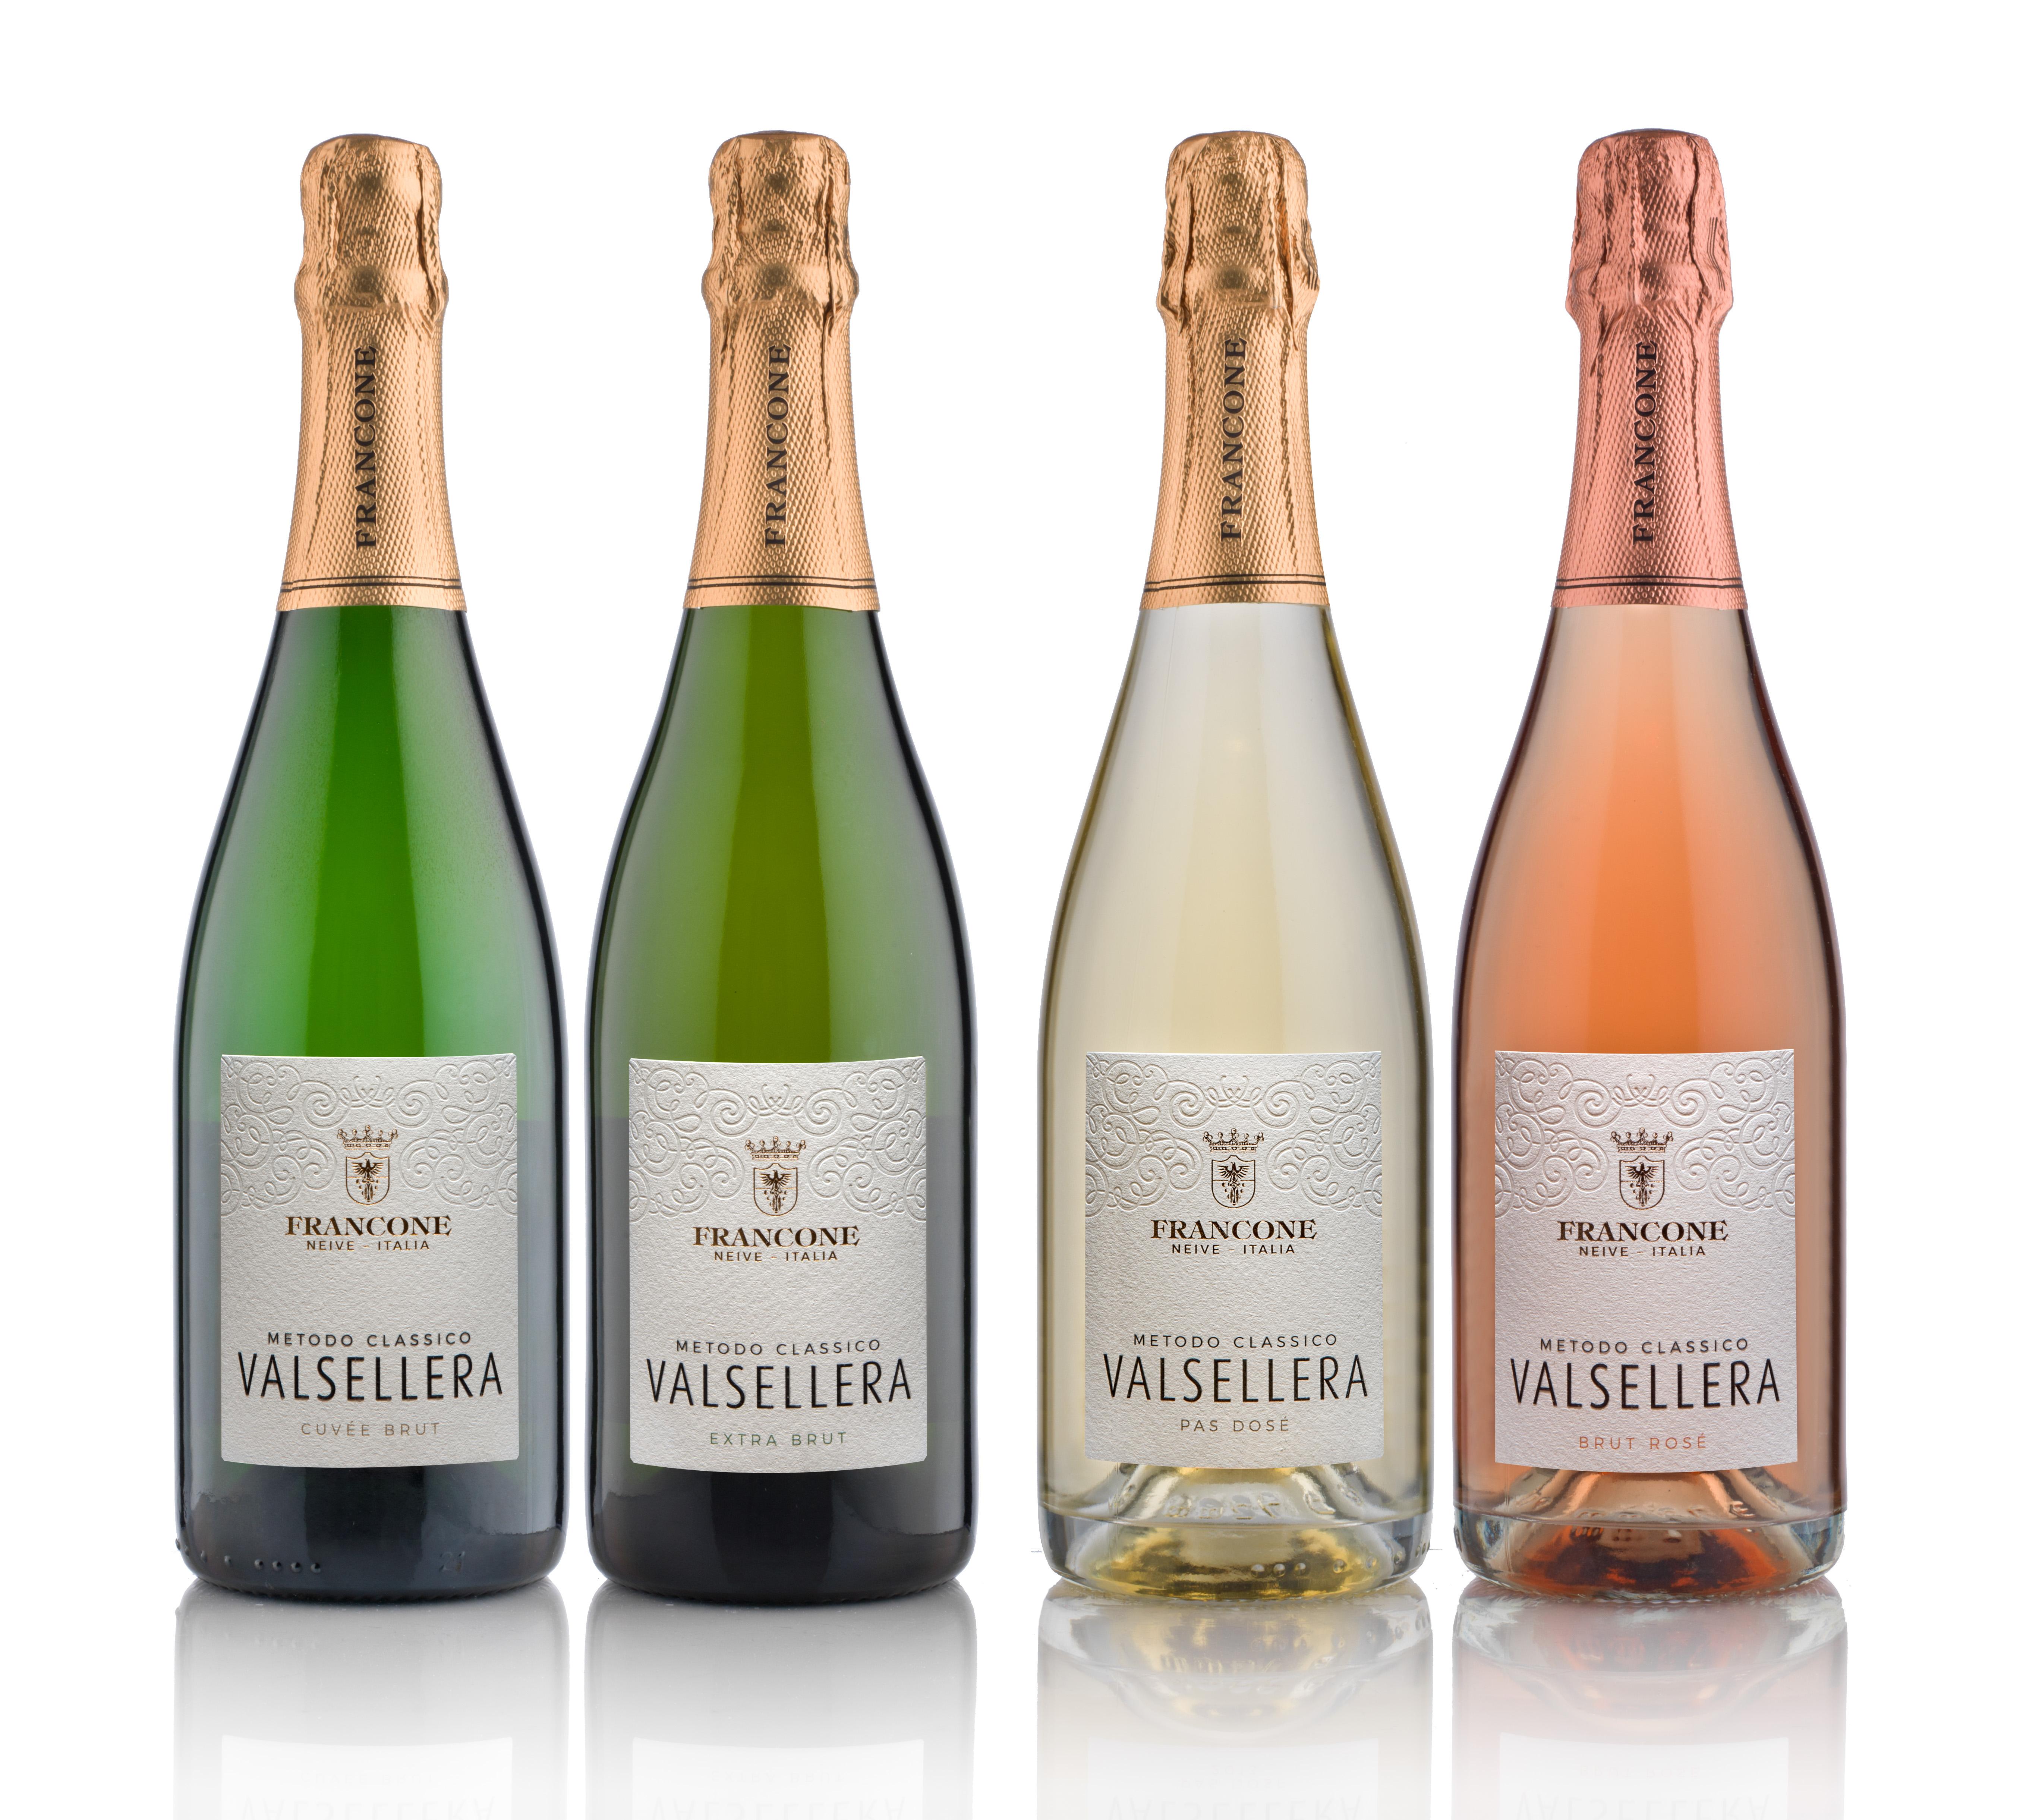 Valsellera: the 50th anniversary of one of the pioneer of Italian Bubbly